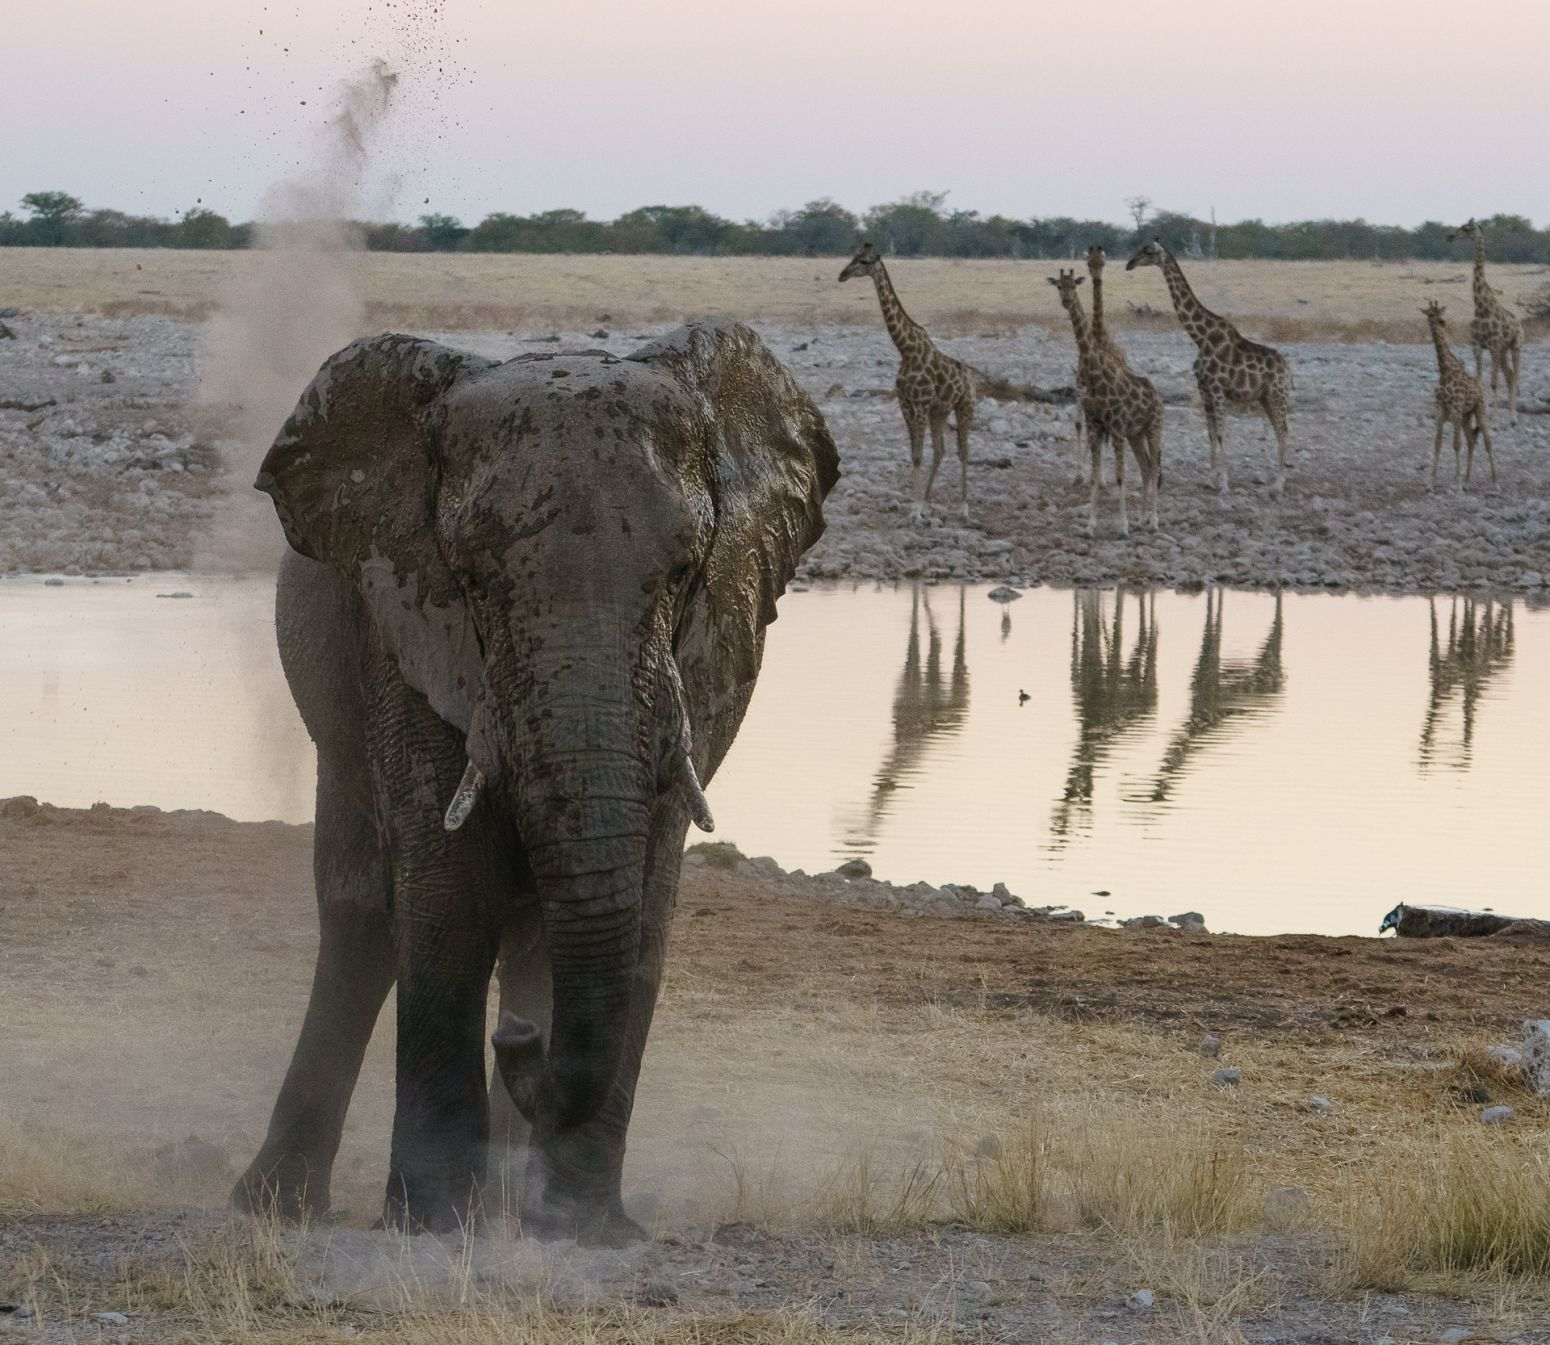 Elephant at Okaukuejo Waterhole, Etosha National Park, Namibia